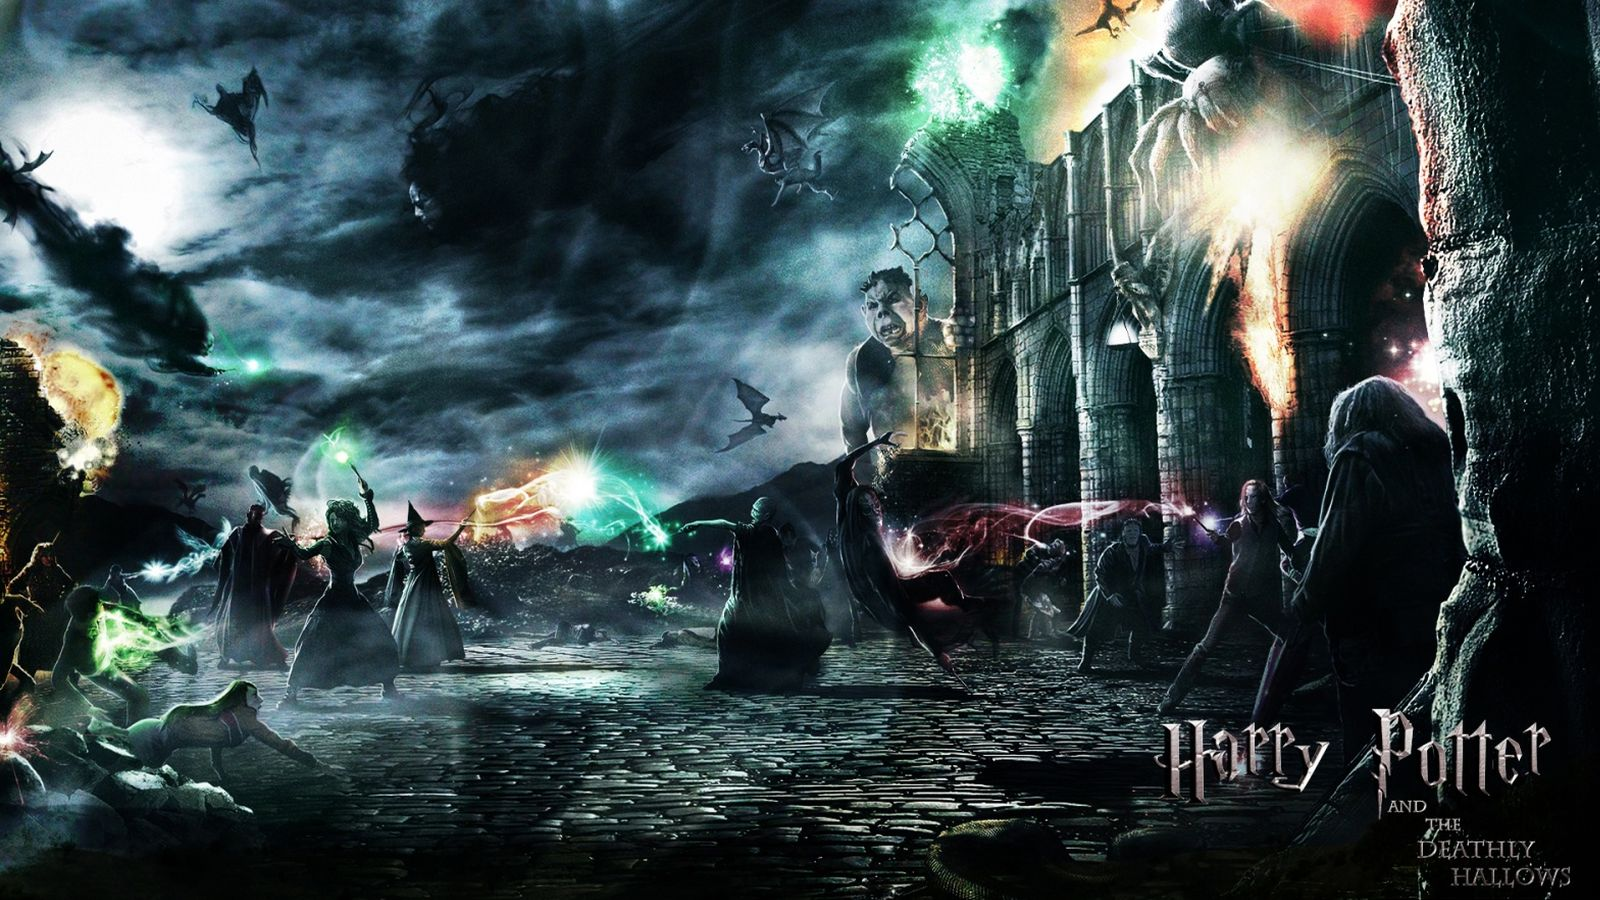 harry_potter_and_the_deathly_hallows_2-wallpaper-1600x900.jpg